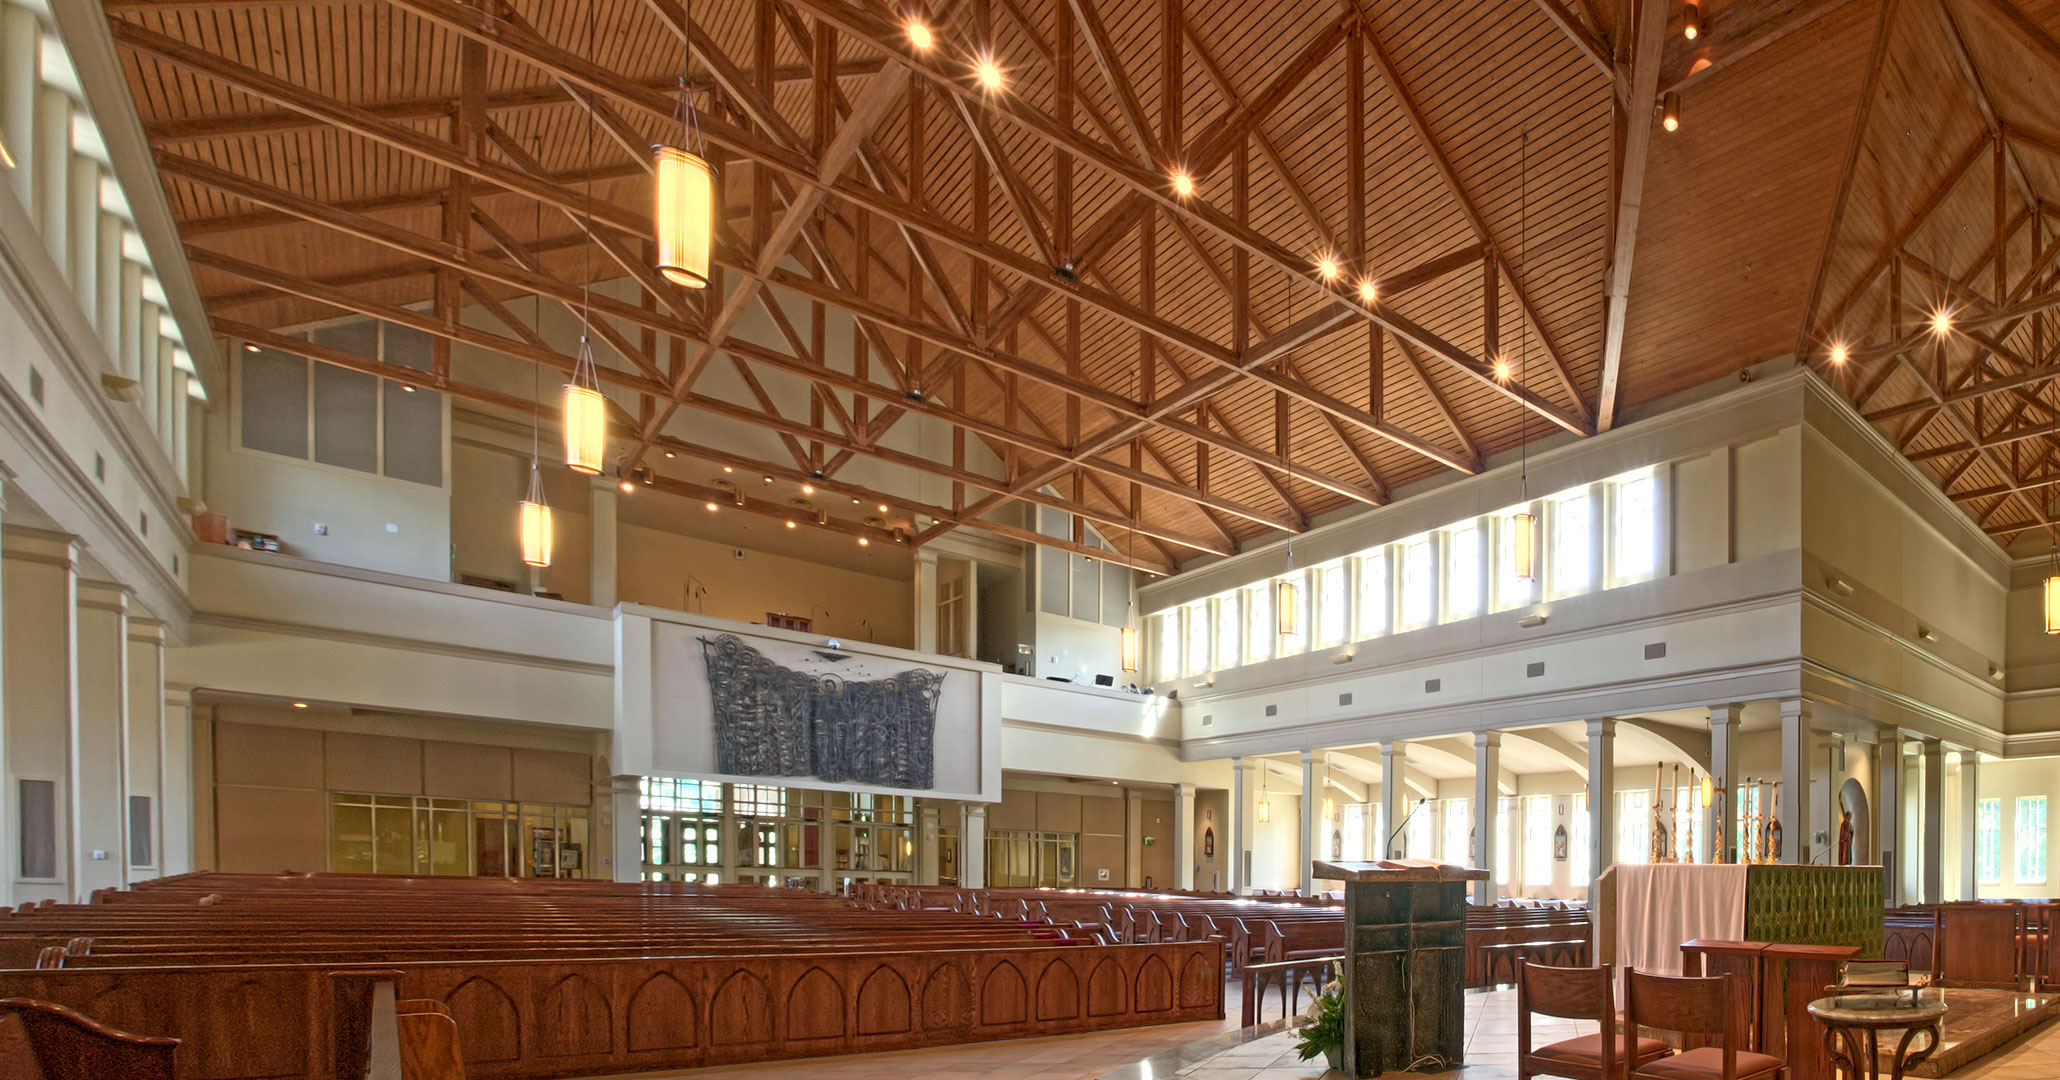 Boudreaux architects worked with St. Mark Catholic Church to create a contemporary interior.